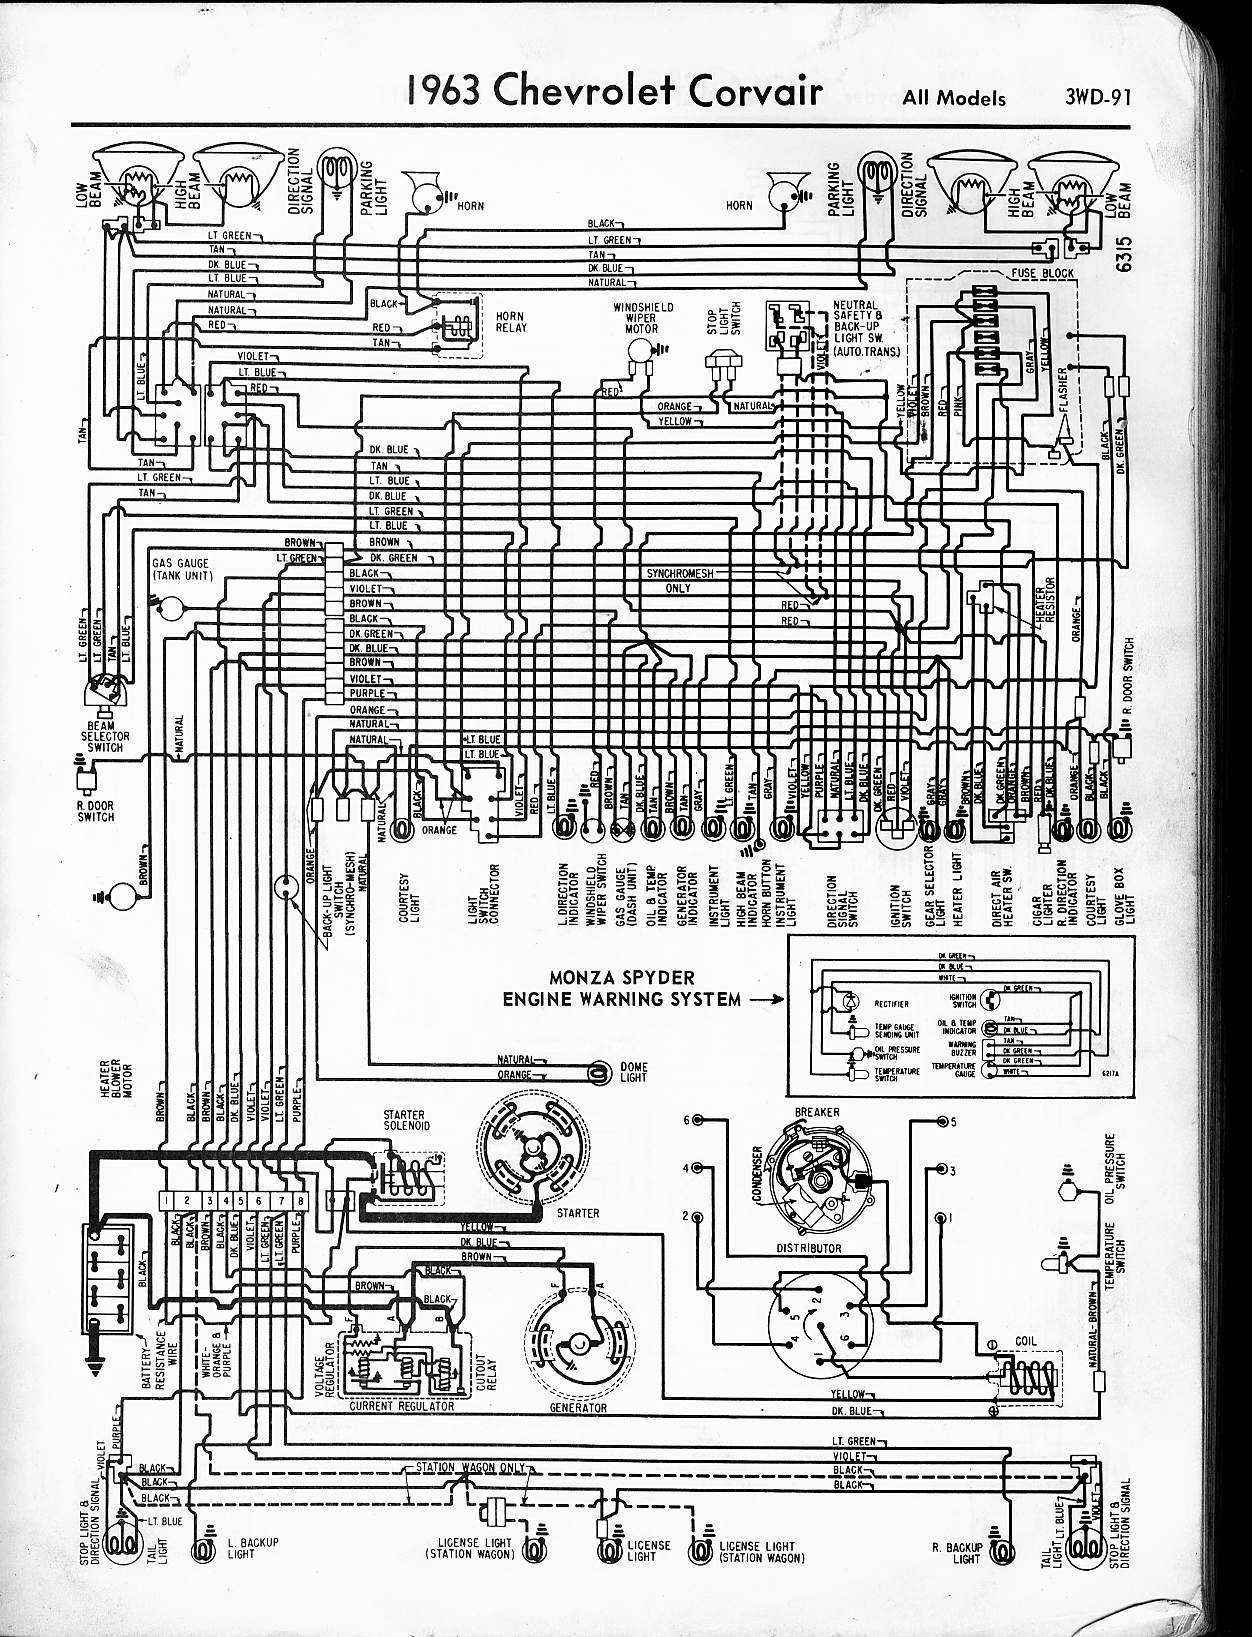 1965 chevy fuse box diagram wiring block diagram Chevy Truck Wiring Harness Standard 1963 chevy fuse box wiring block diagram 1989 chevy fuse box diagram 1965 chevy fuse box diagram